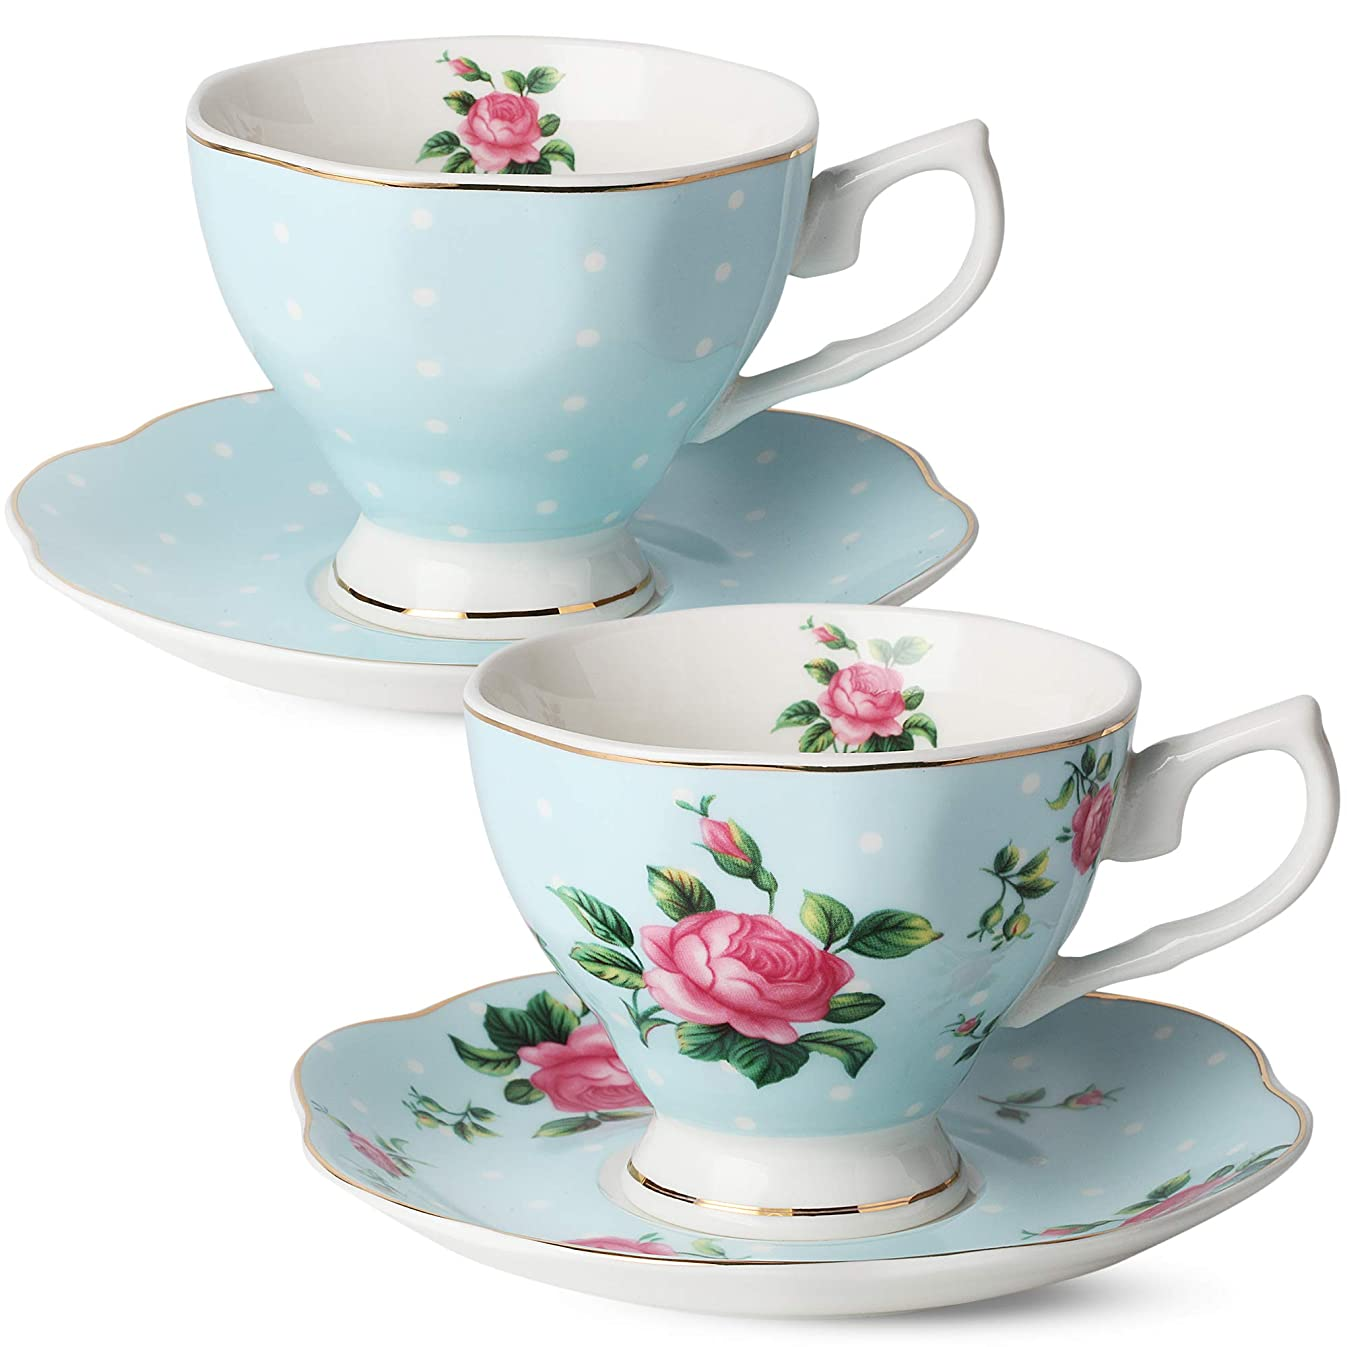 BT?T- Floral Tea Cups and Saucers, Set of 2 (Blue - 8 oz) with Gold Trim and Gift Box, Coffee Cups, Floral Tea Cup Set, British Tea Cups, Bone China Porcelain Tea Set, Tea Sets for Women, Latte Cups